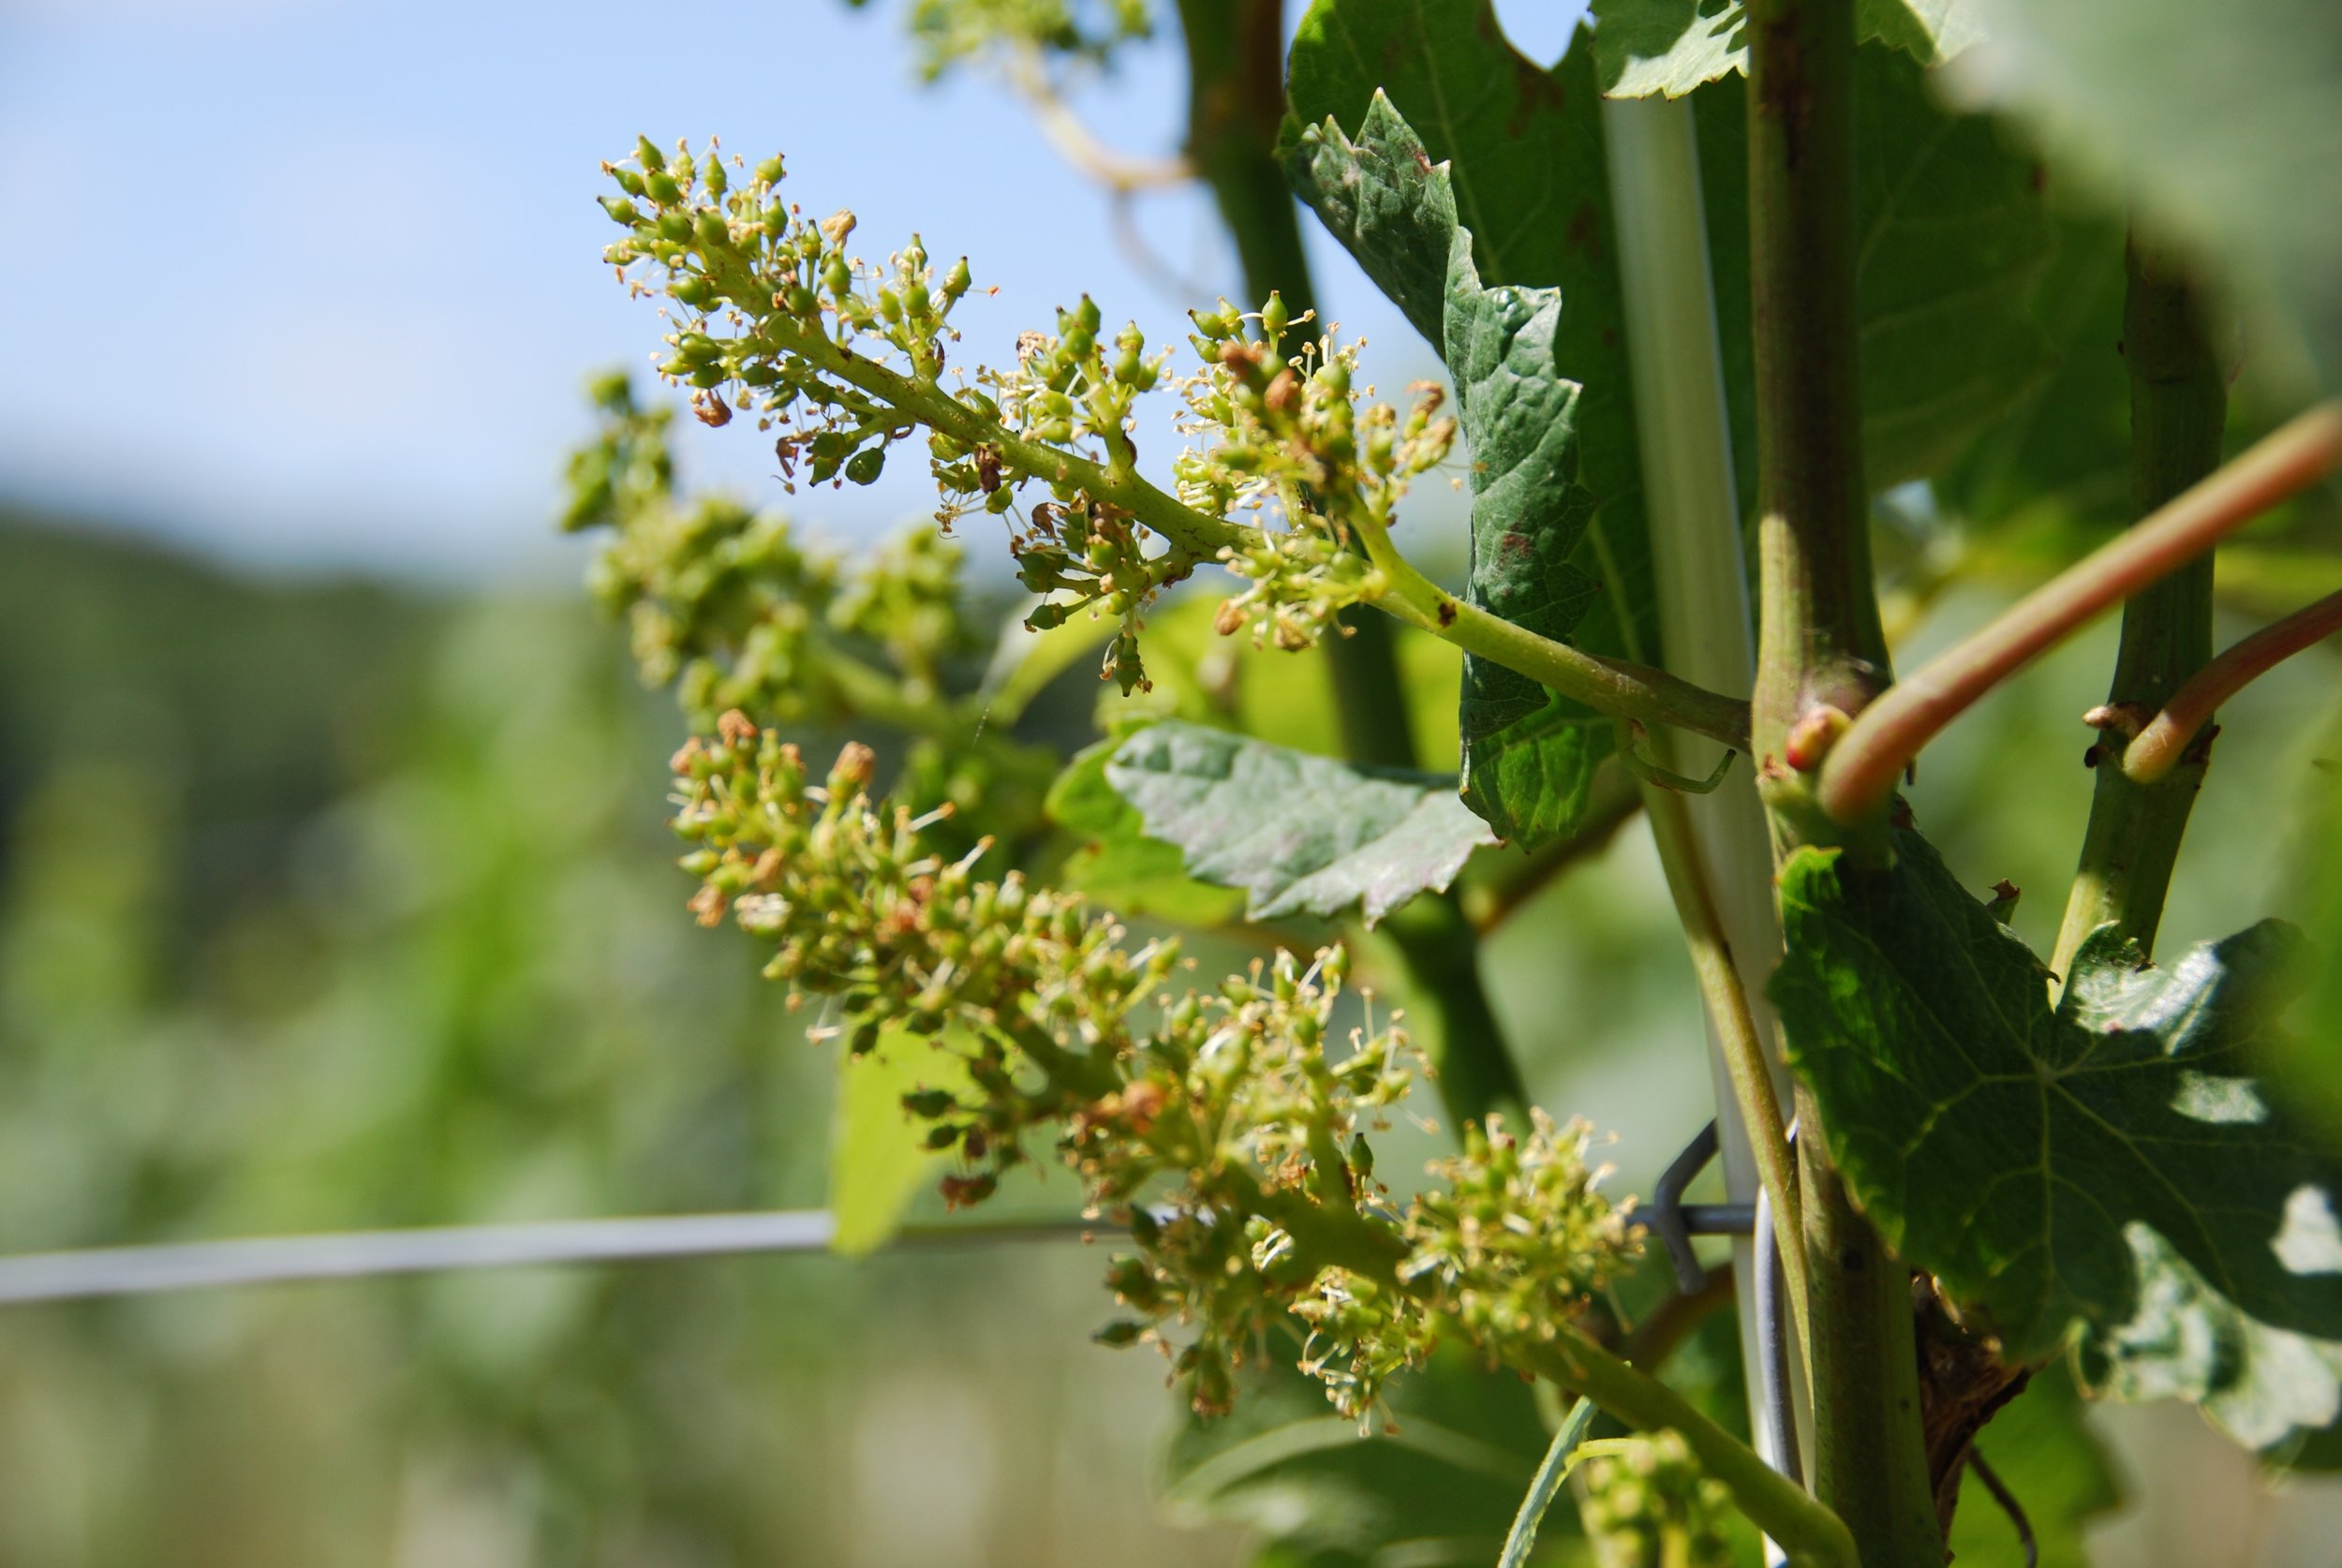 The recent spell of warm weather means that the vines have flowered earlier than expected, given the relatively late start to the season. Fingers crossed now for fruit-set in a few weeks!